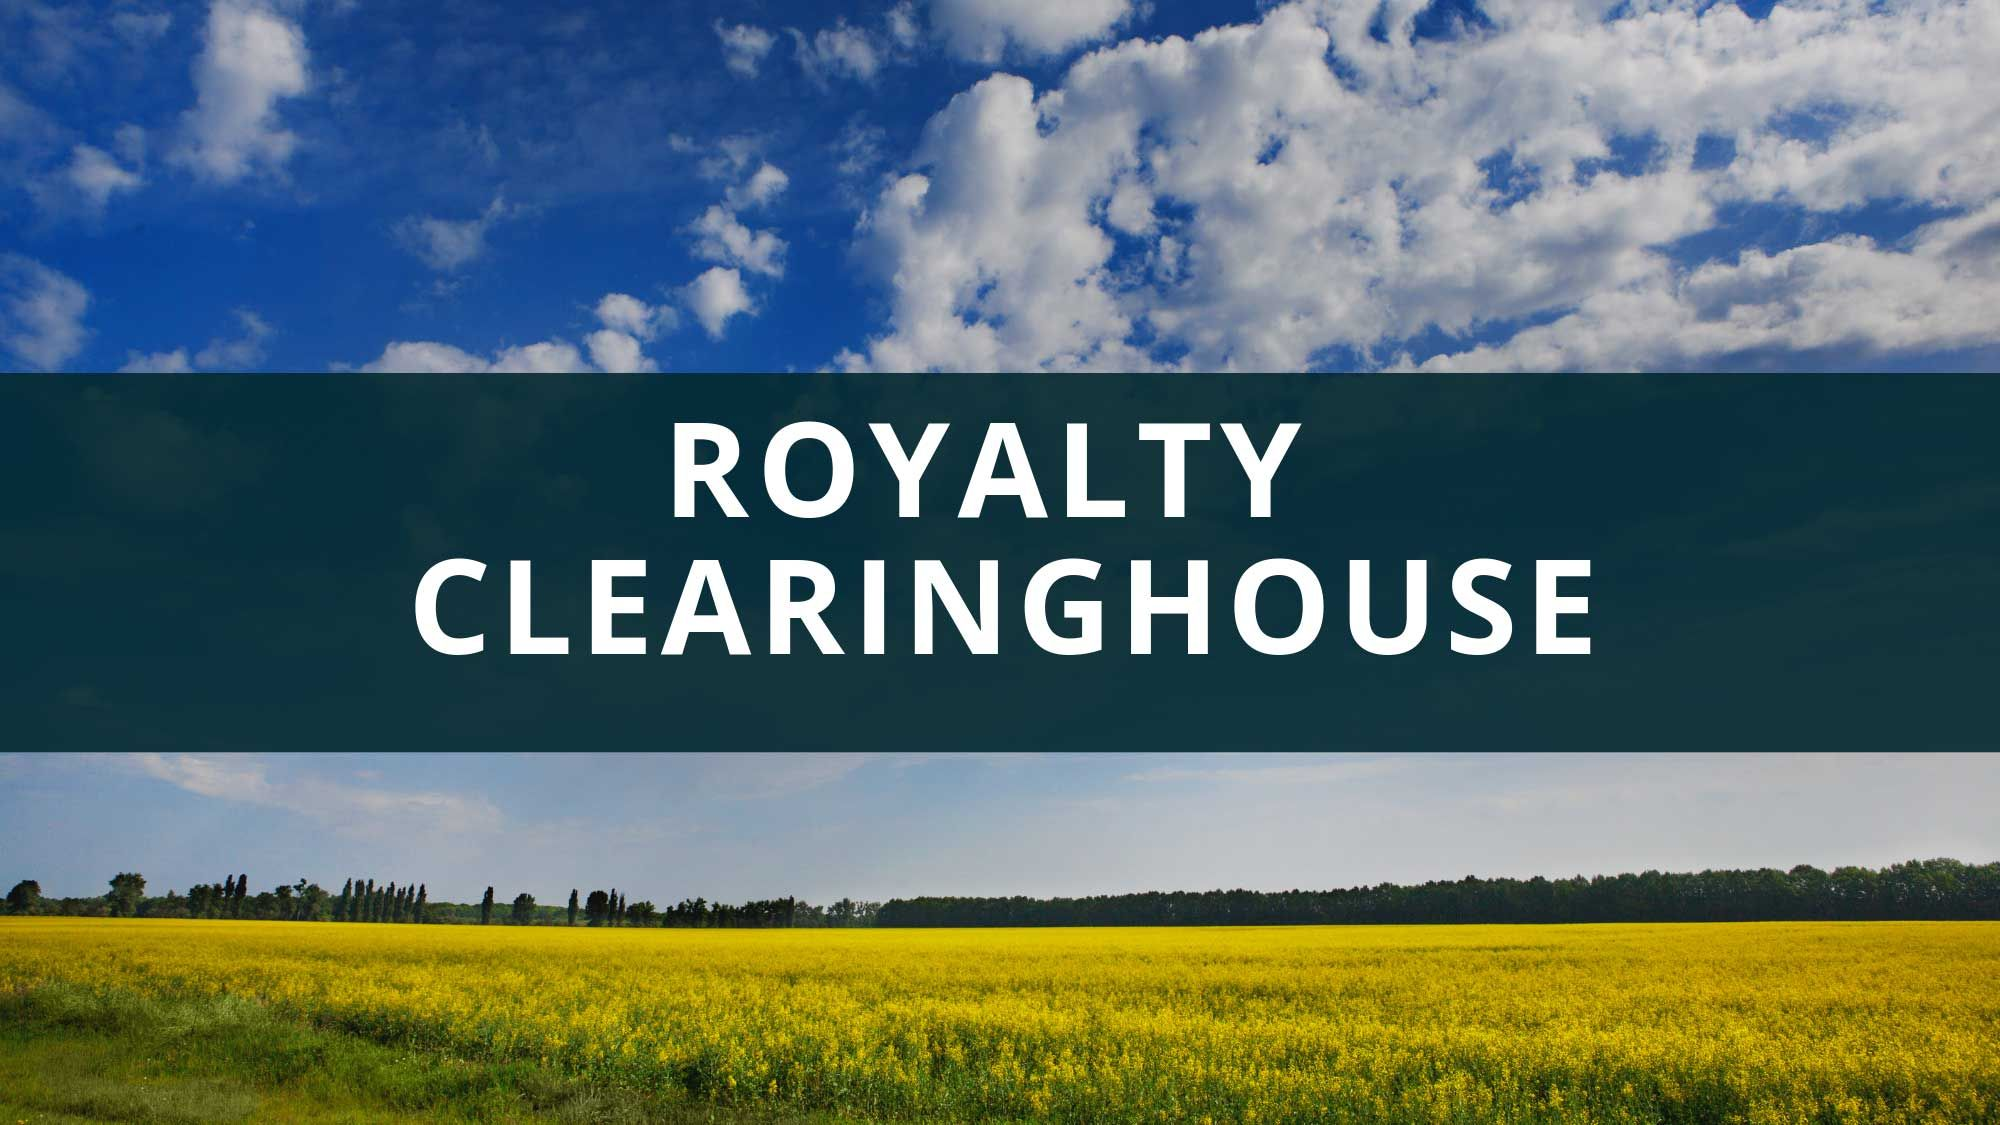 Royalty-Clearinghouse-Blog-Banner(2000x1125).jpg